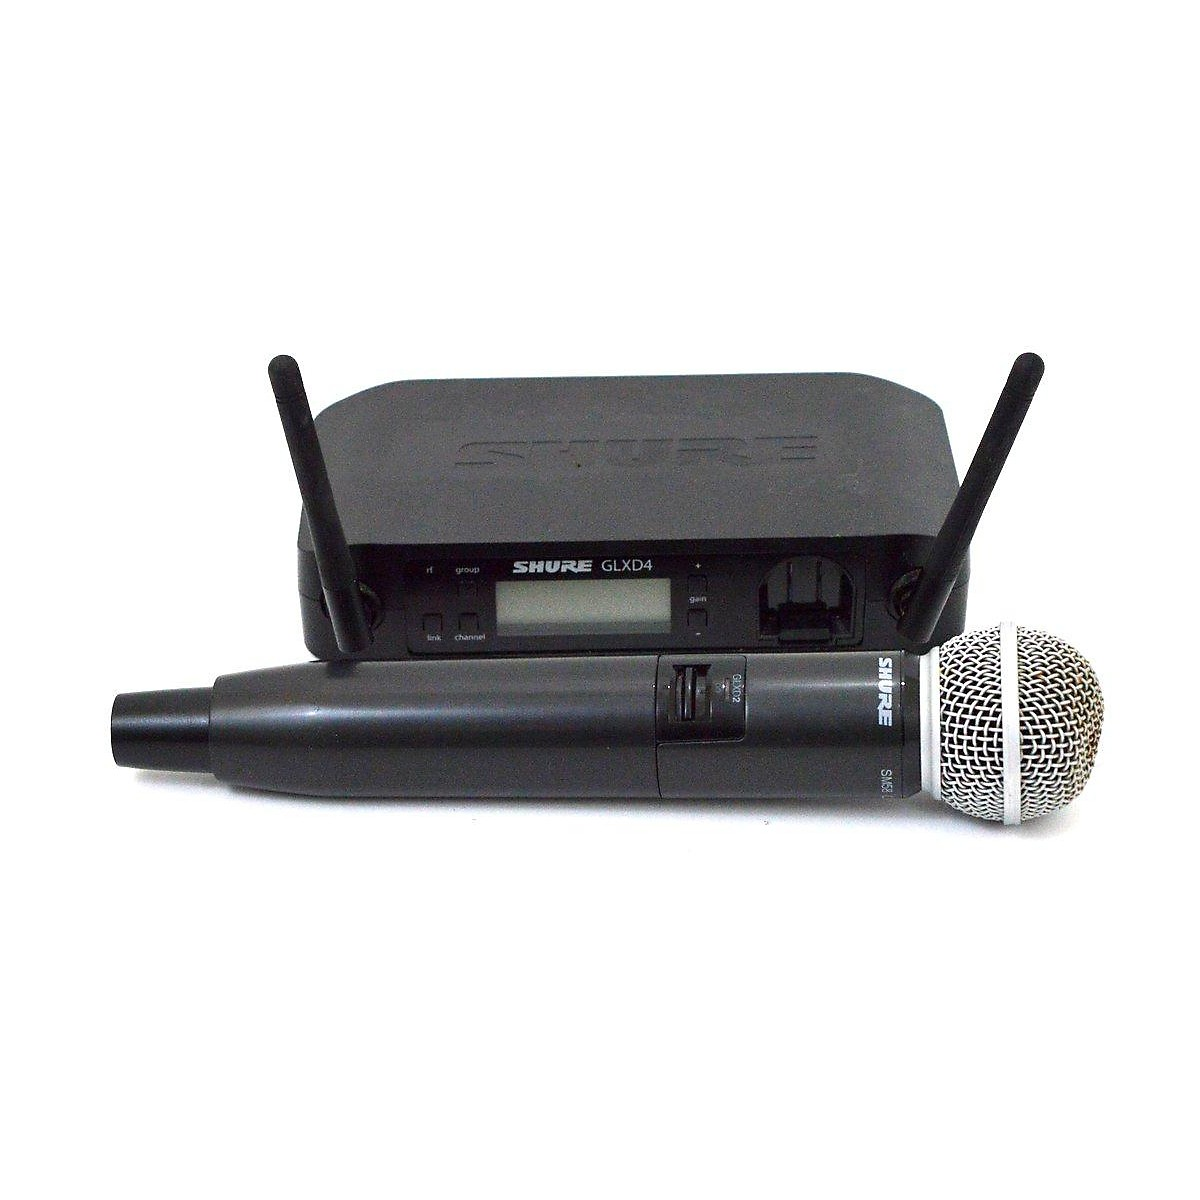 Shure GLXD4 Dynamic Wireless Microphone Handheld Wireless System